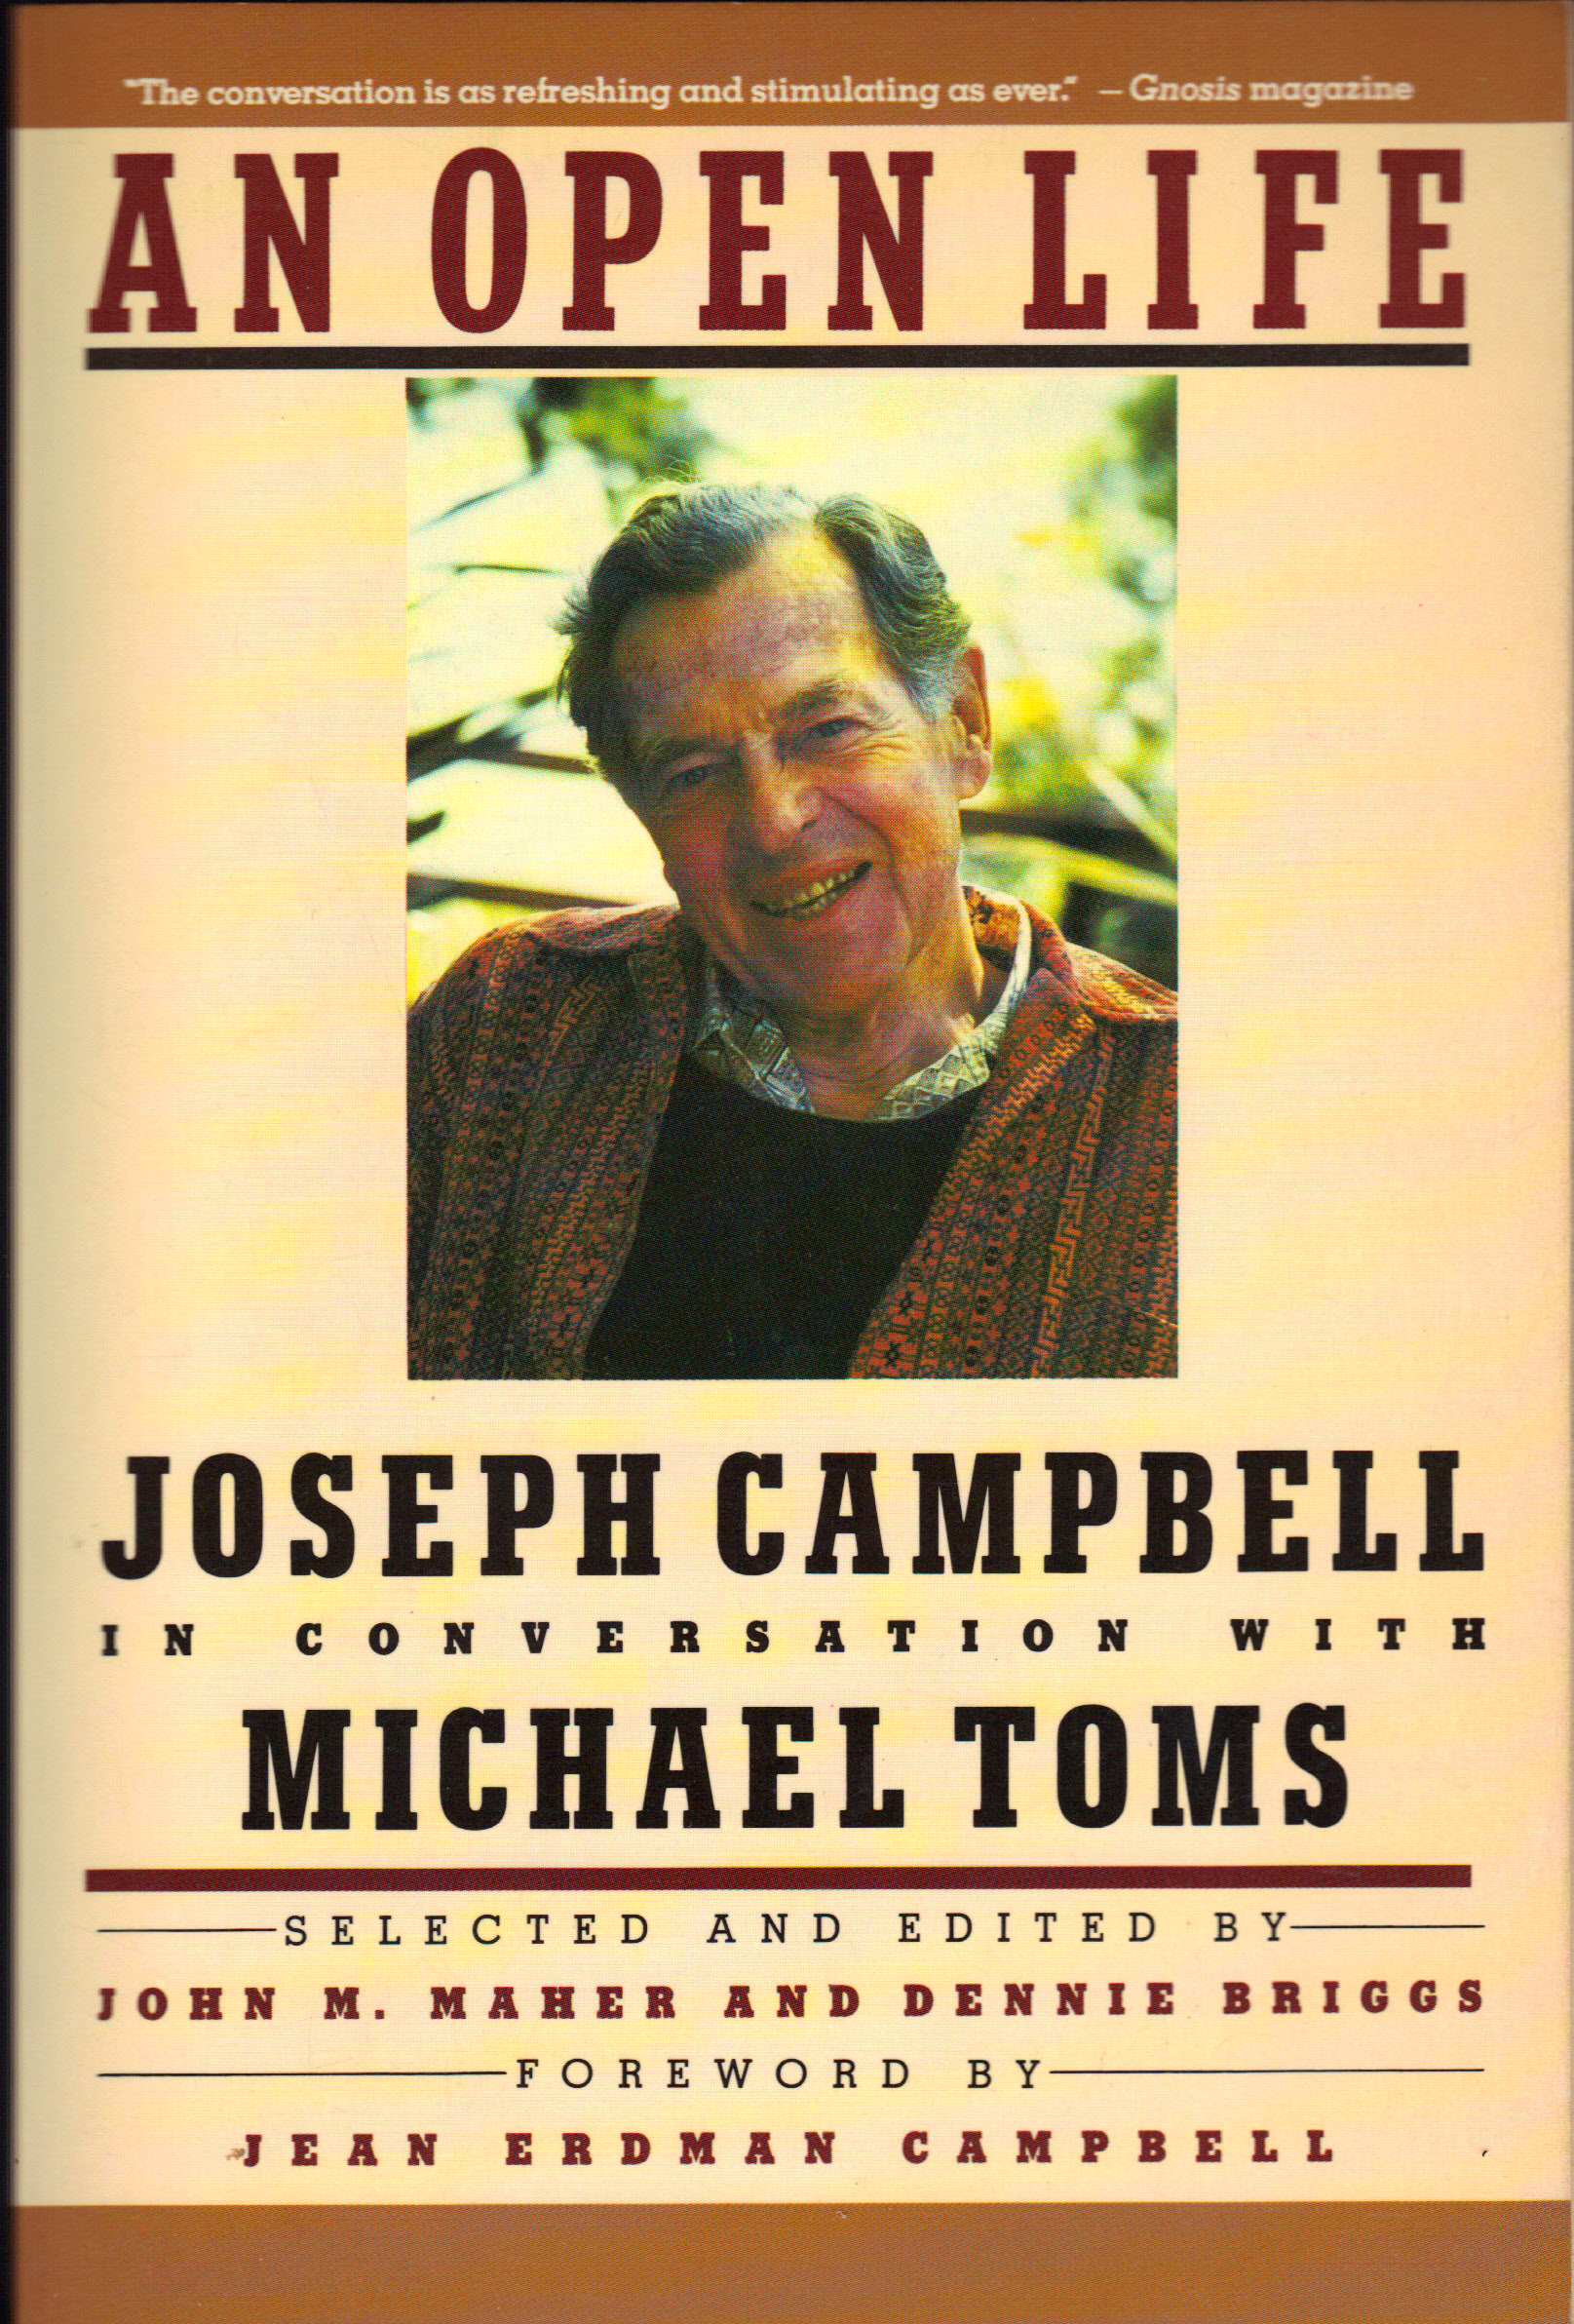 Image for AN OPEN LIFE ~ In Conversation with Michael Toms